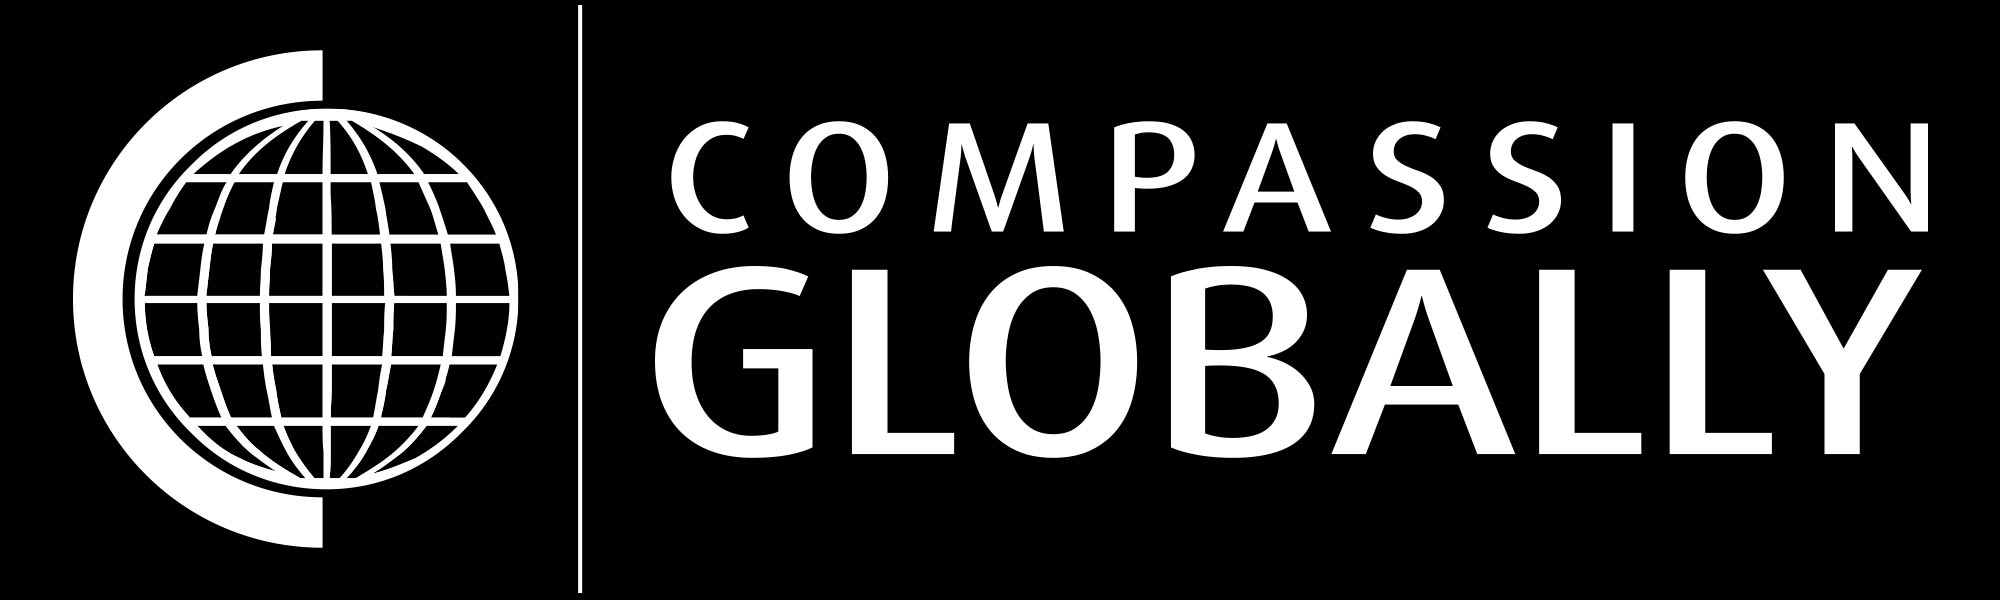 Compassion Globally Logo